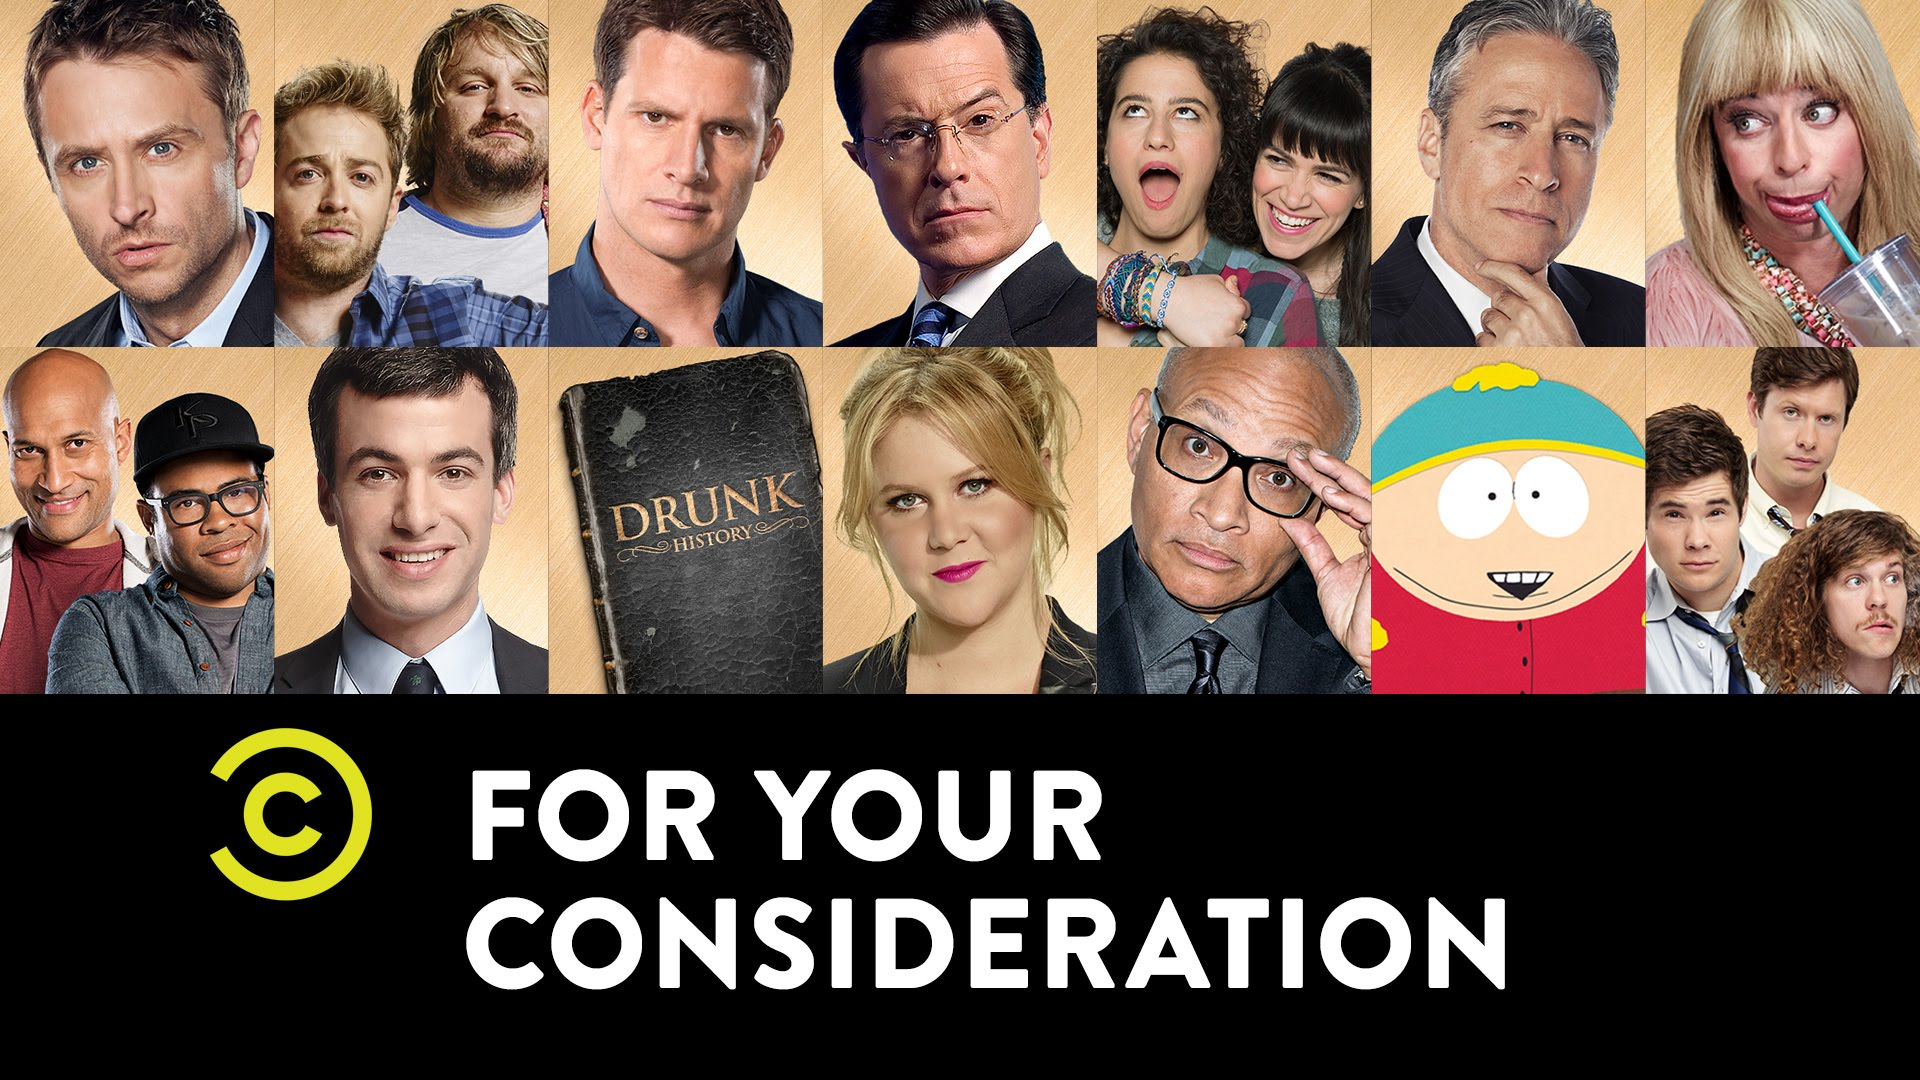 Comedy Central at peak TV glory, just as TV viewership is fading